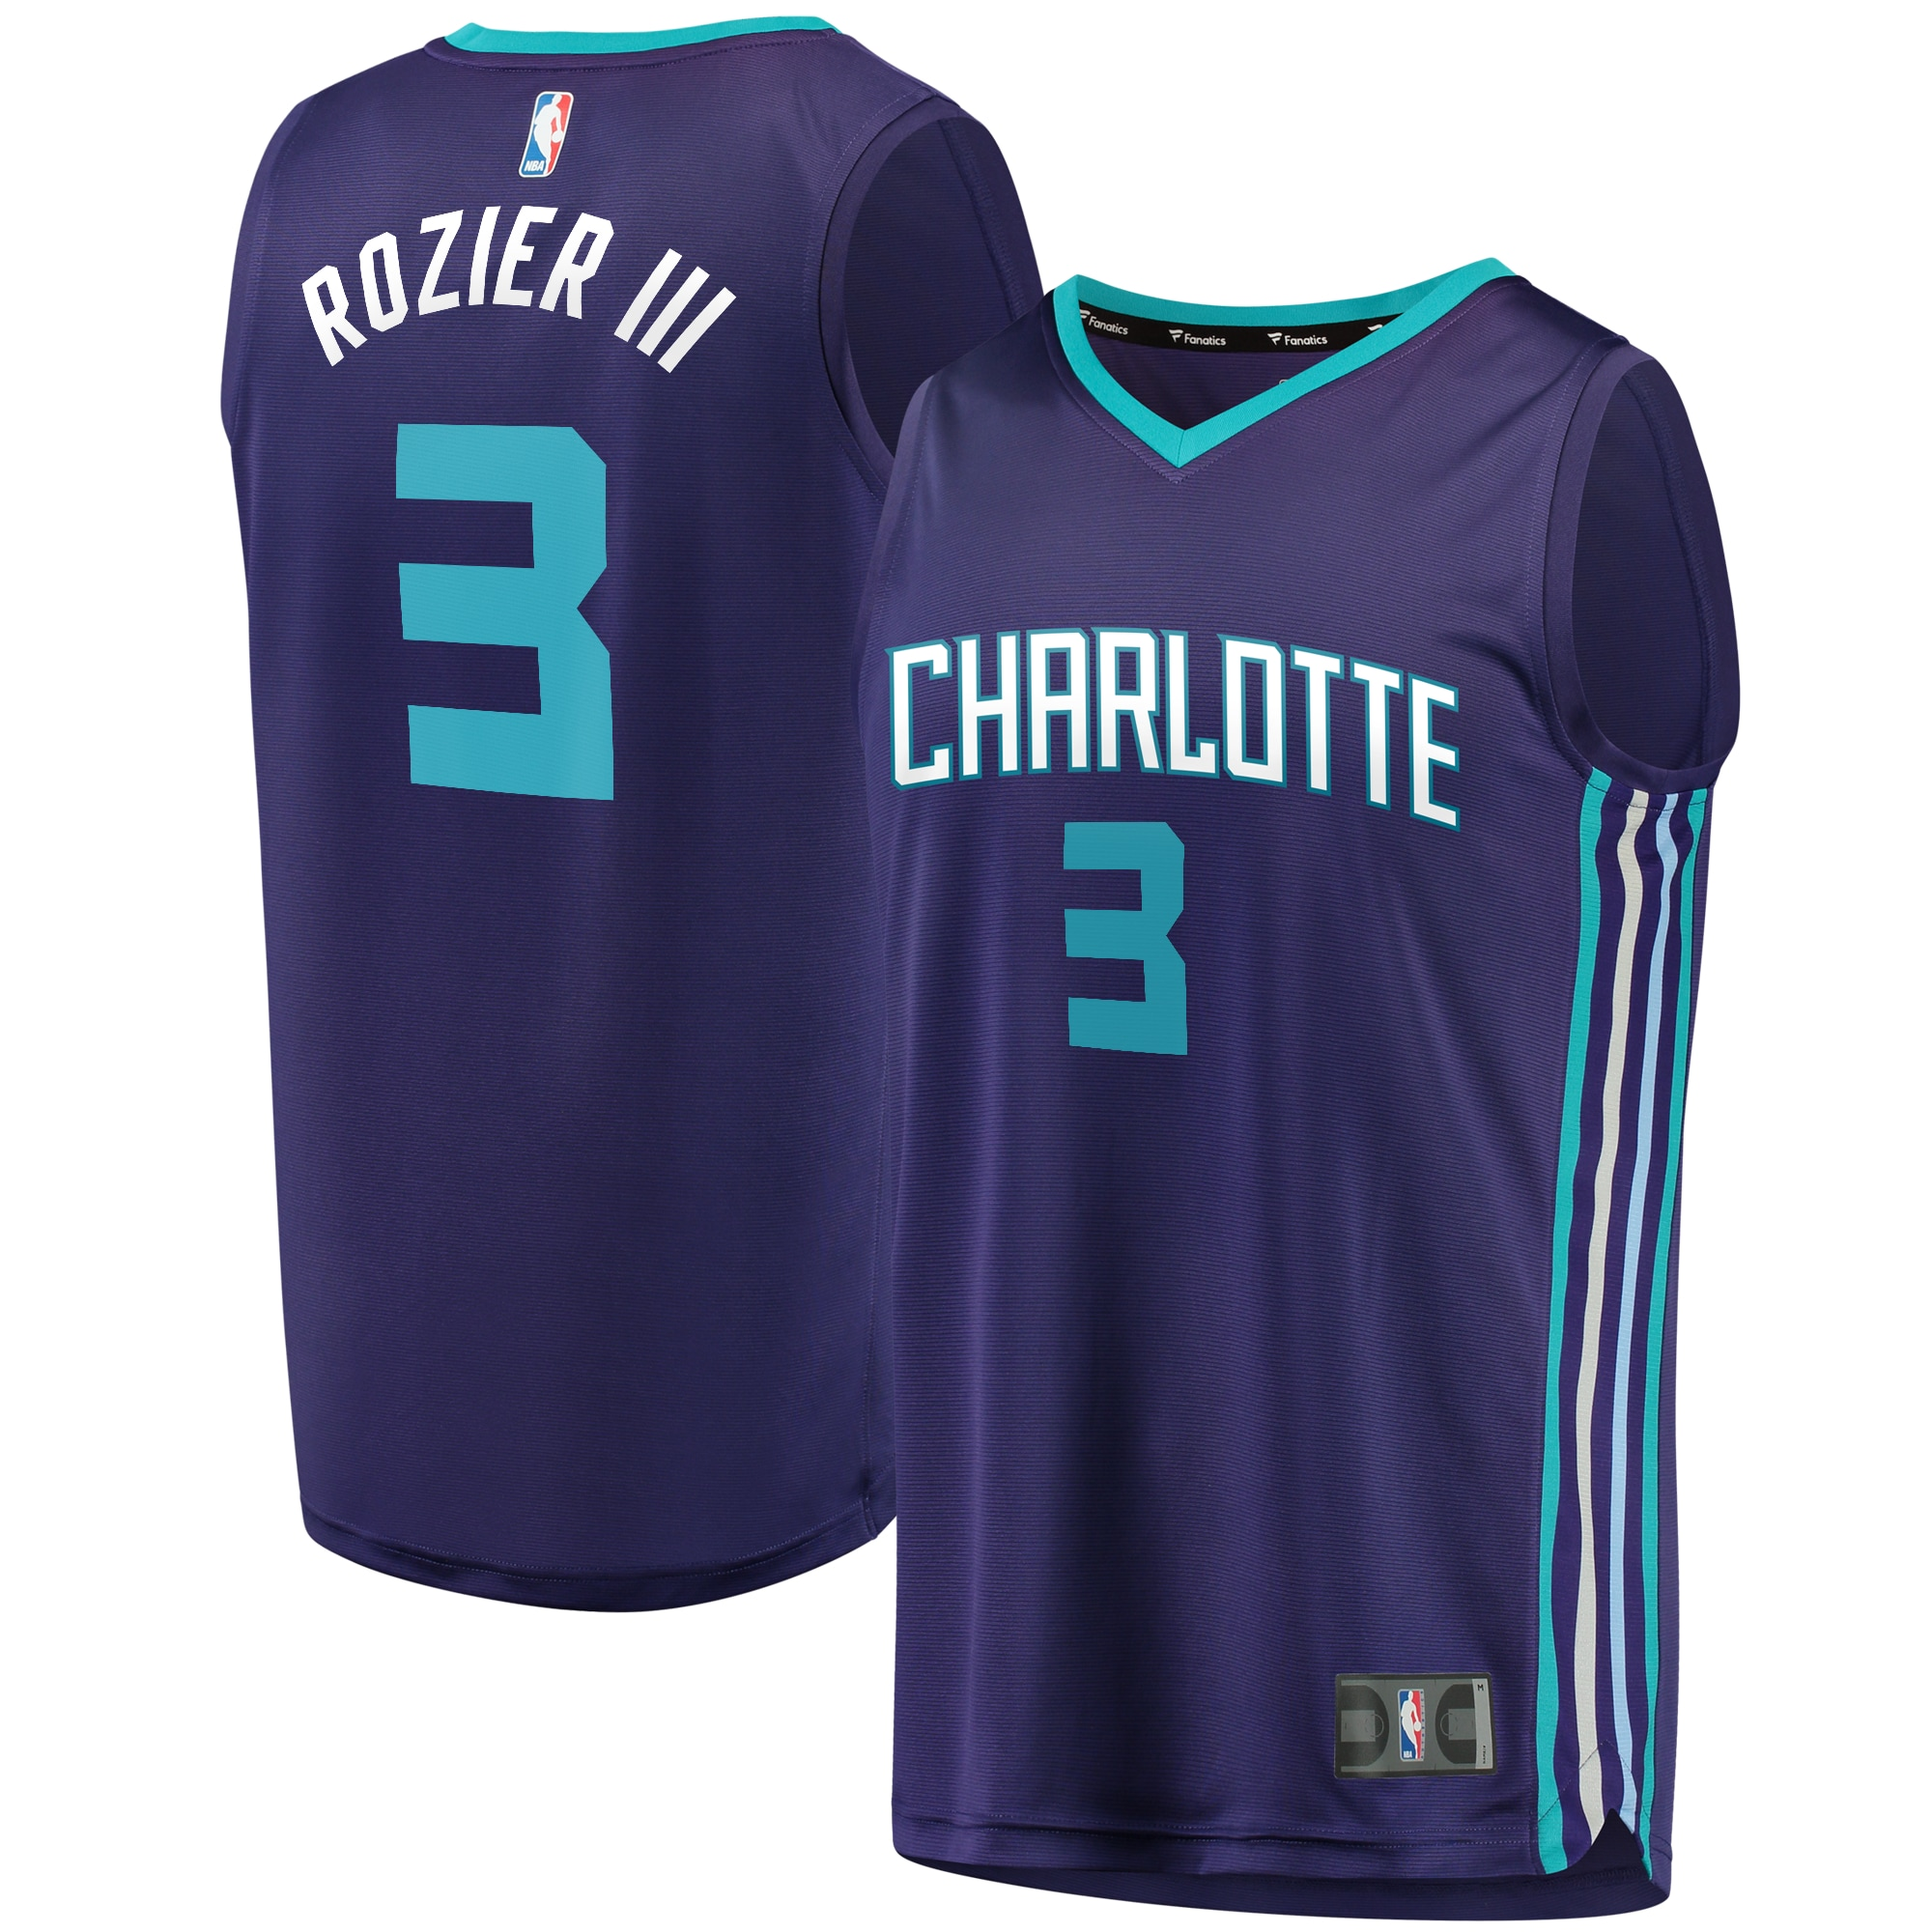 Terry Rozier Charlotte Hornets Fanatics Branded Youth Fast Break Replica Jersey Purple - Statement Edition